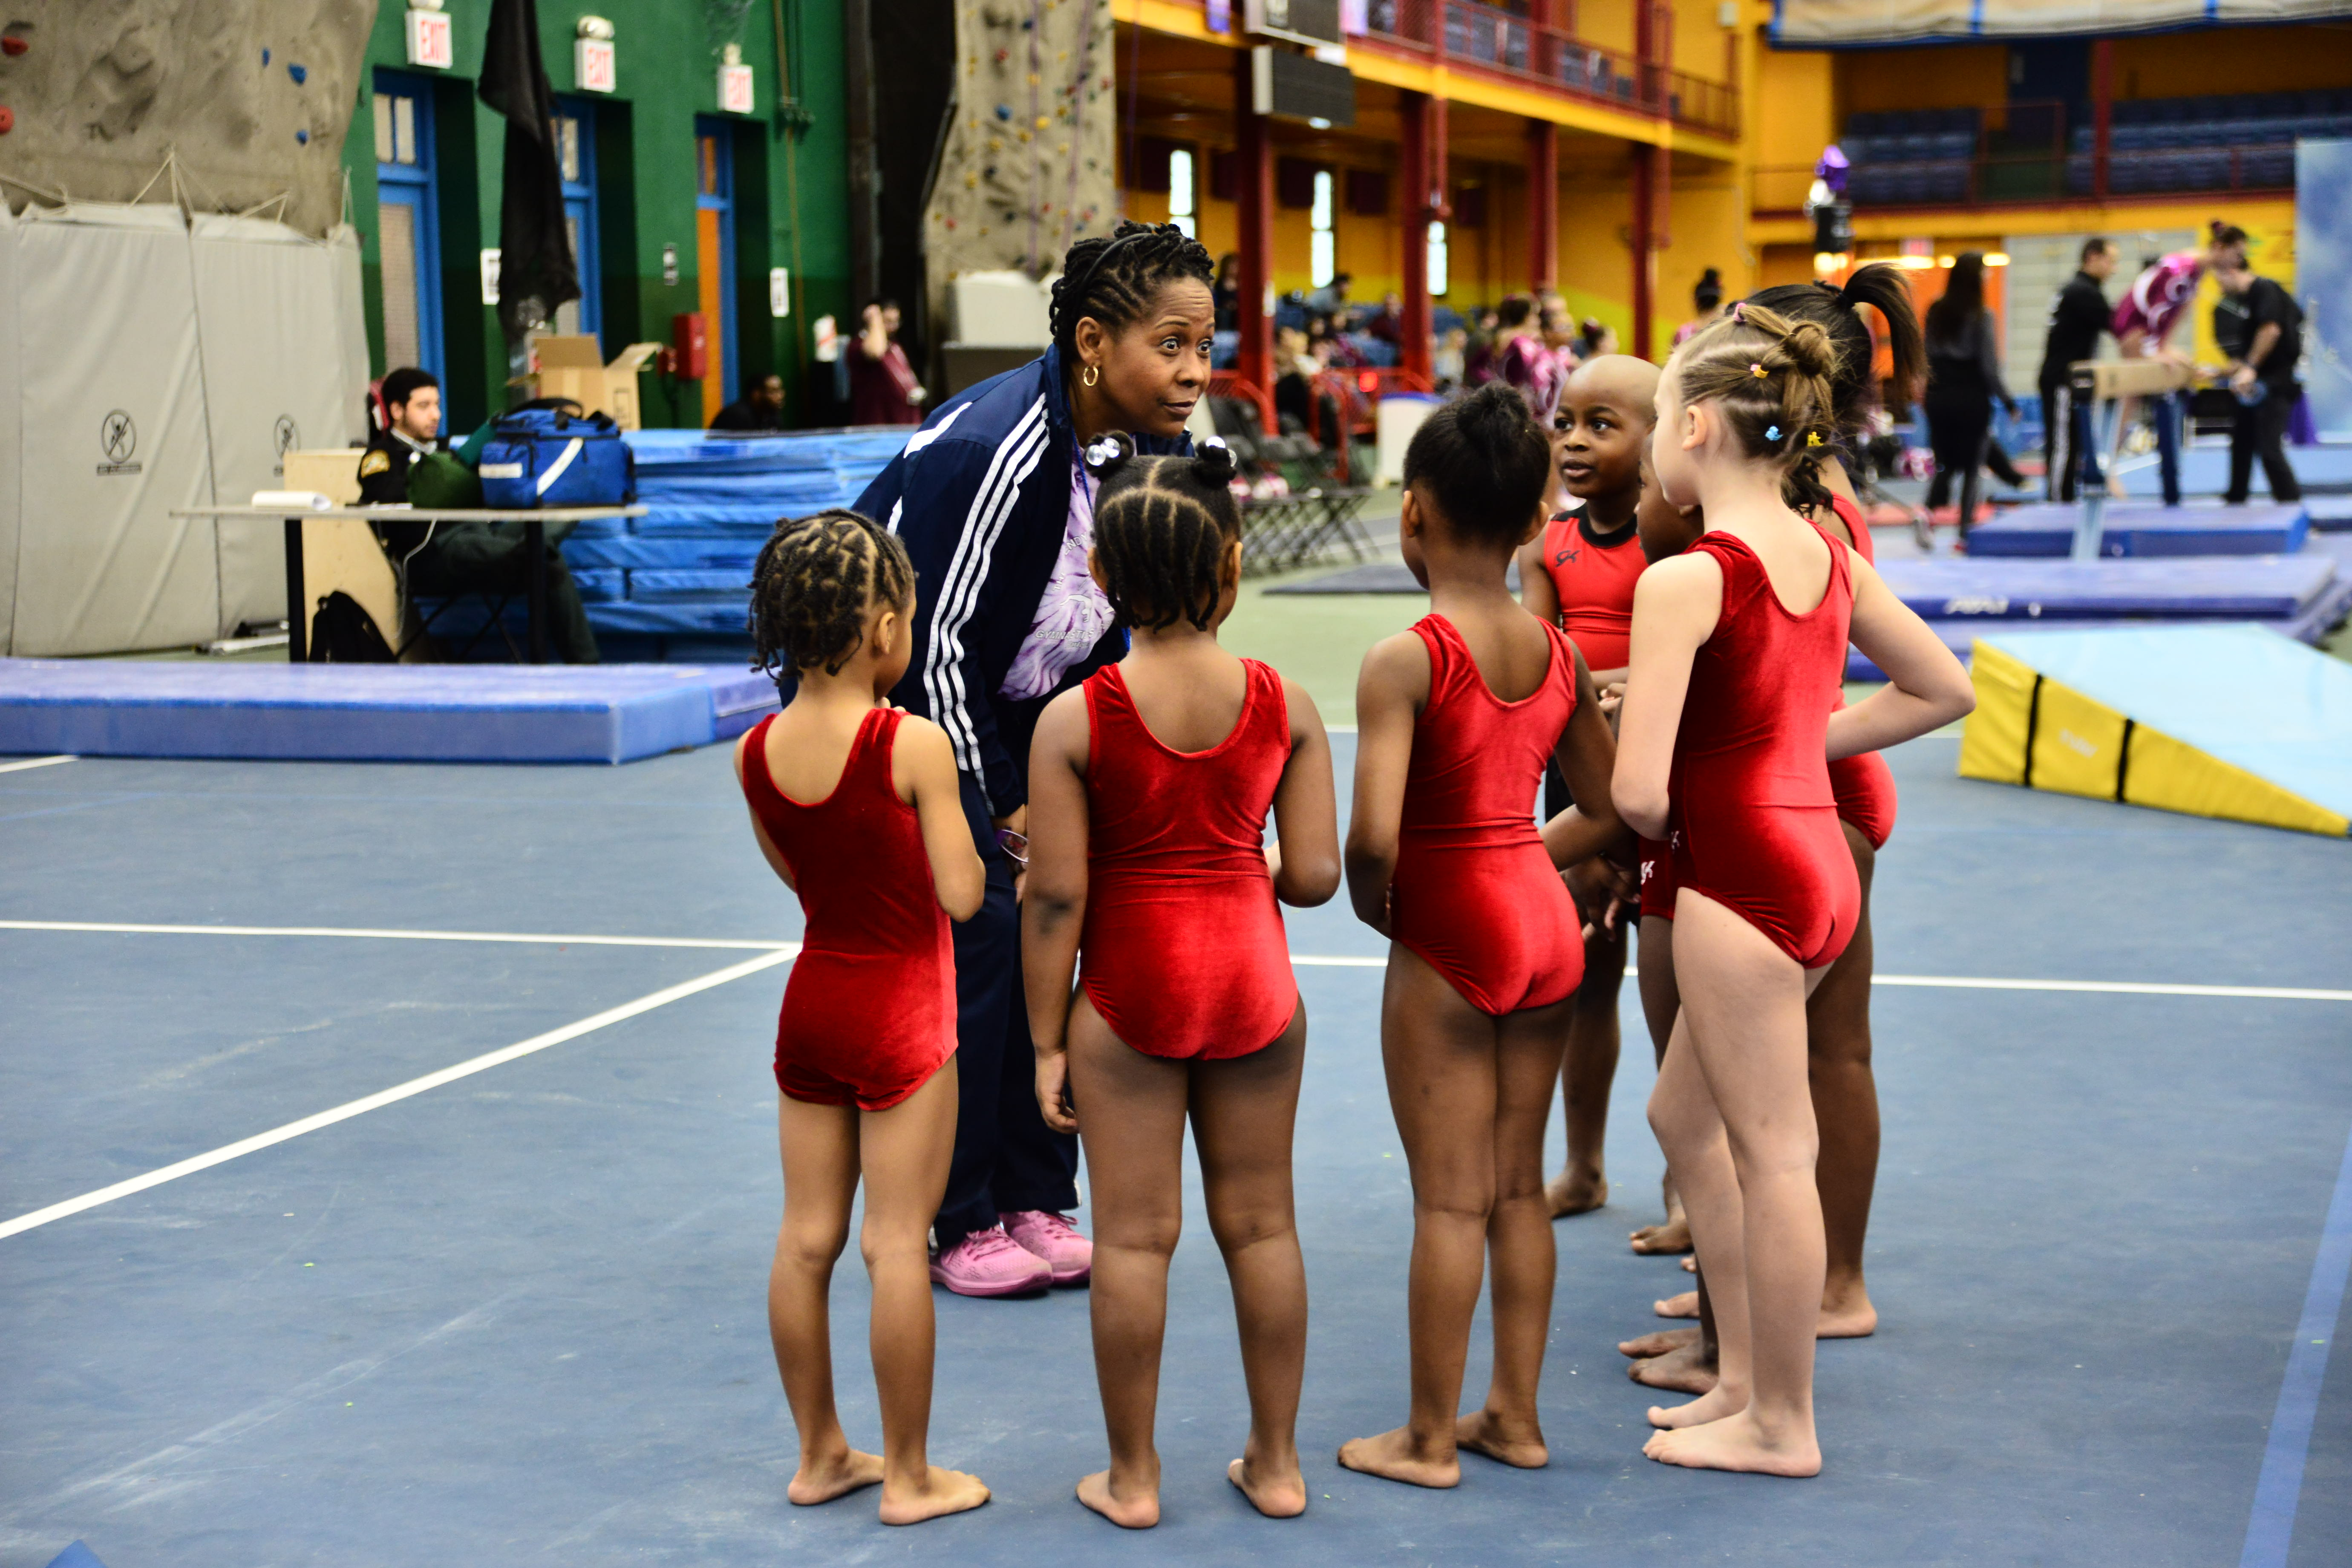 Hall of Fame Rhythmic Gymnast Wendy Hilliard holds a pep talk with some of her young students at the Harlem Gymnastics Invitational held on Feb. 21 at the Harlem Armory.